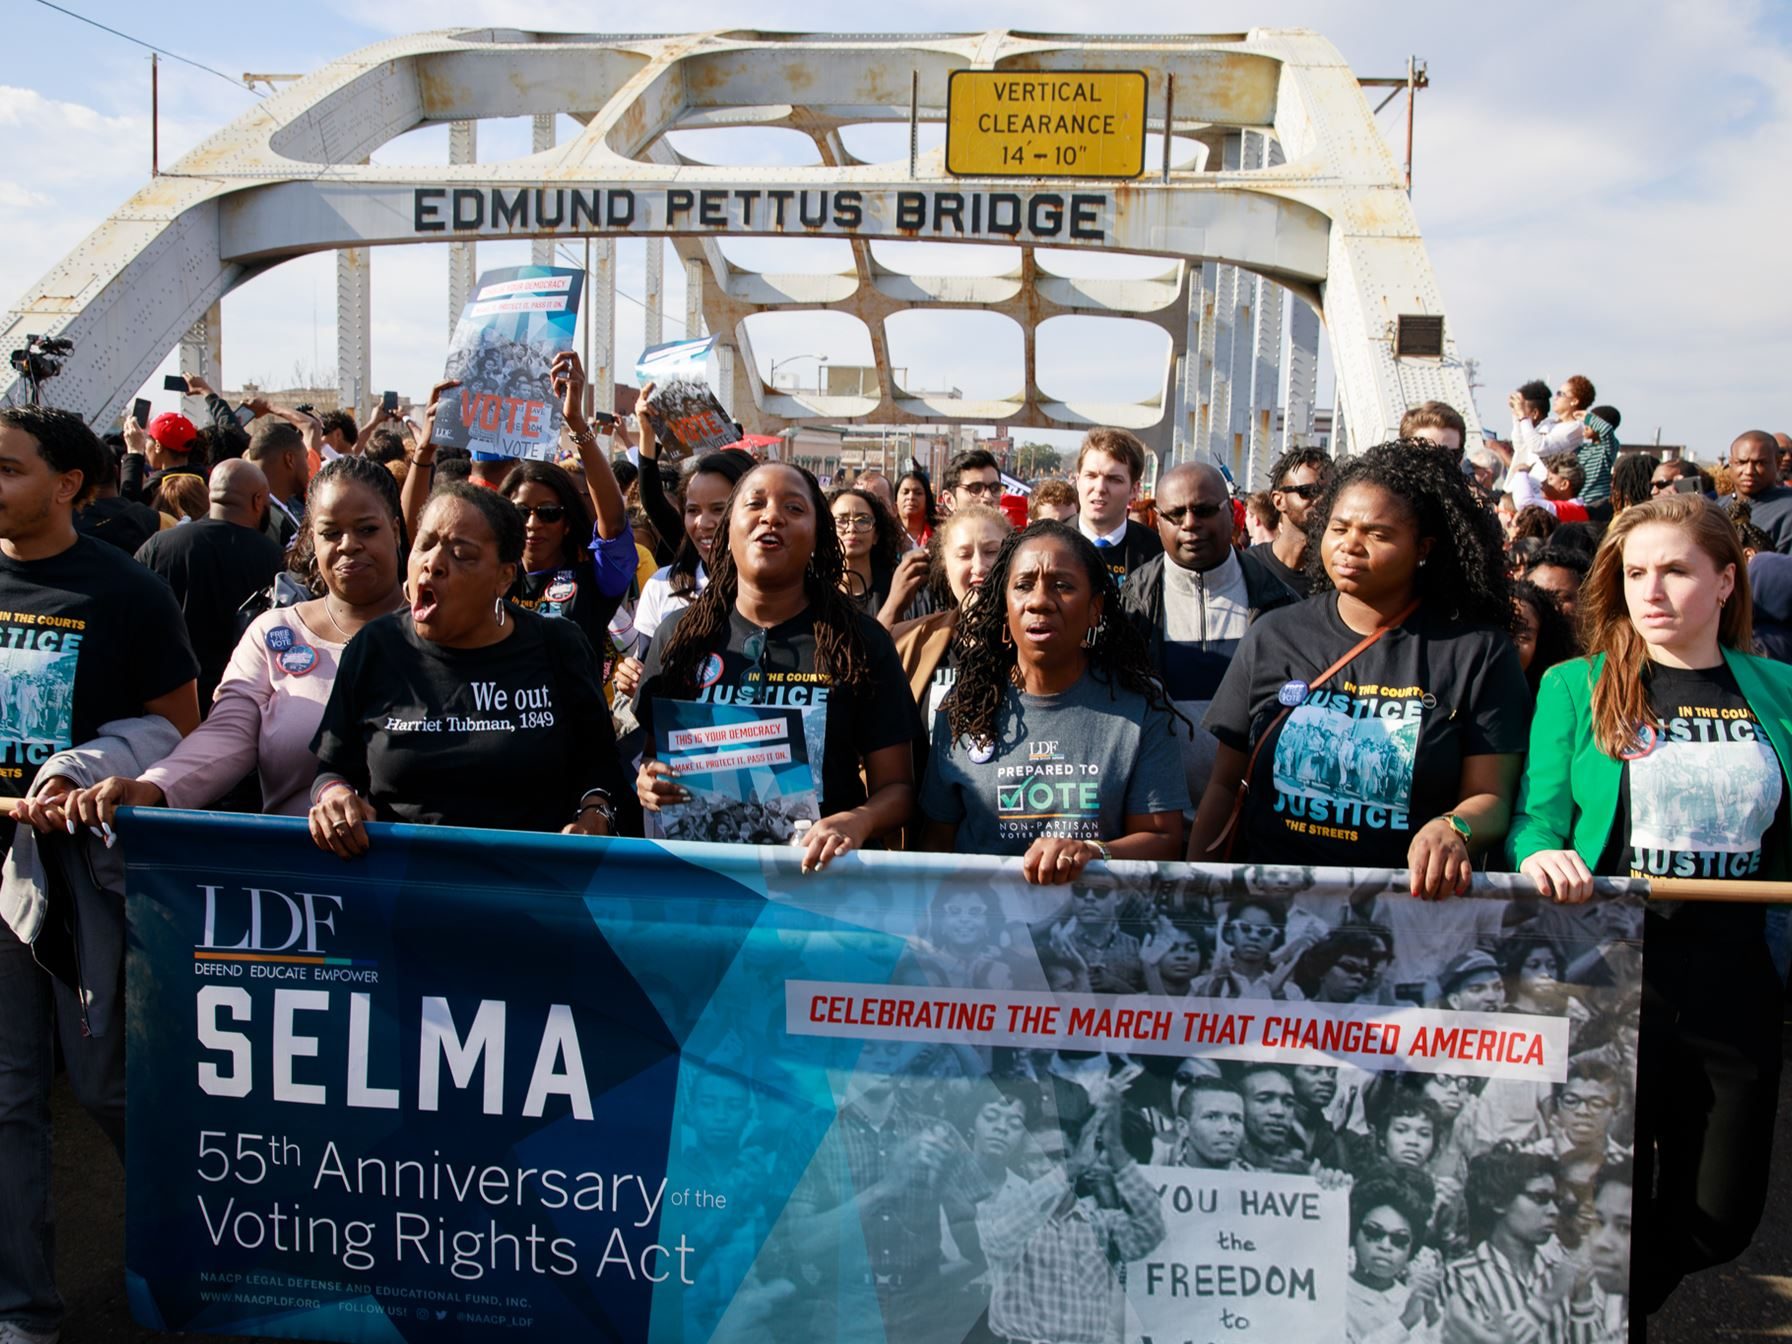 Marchers on Edmund Pettus bridge, commemorating the 55th Anniversary of the Voting Rights Act with a banner